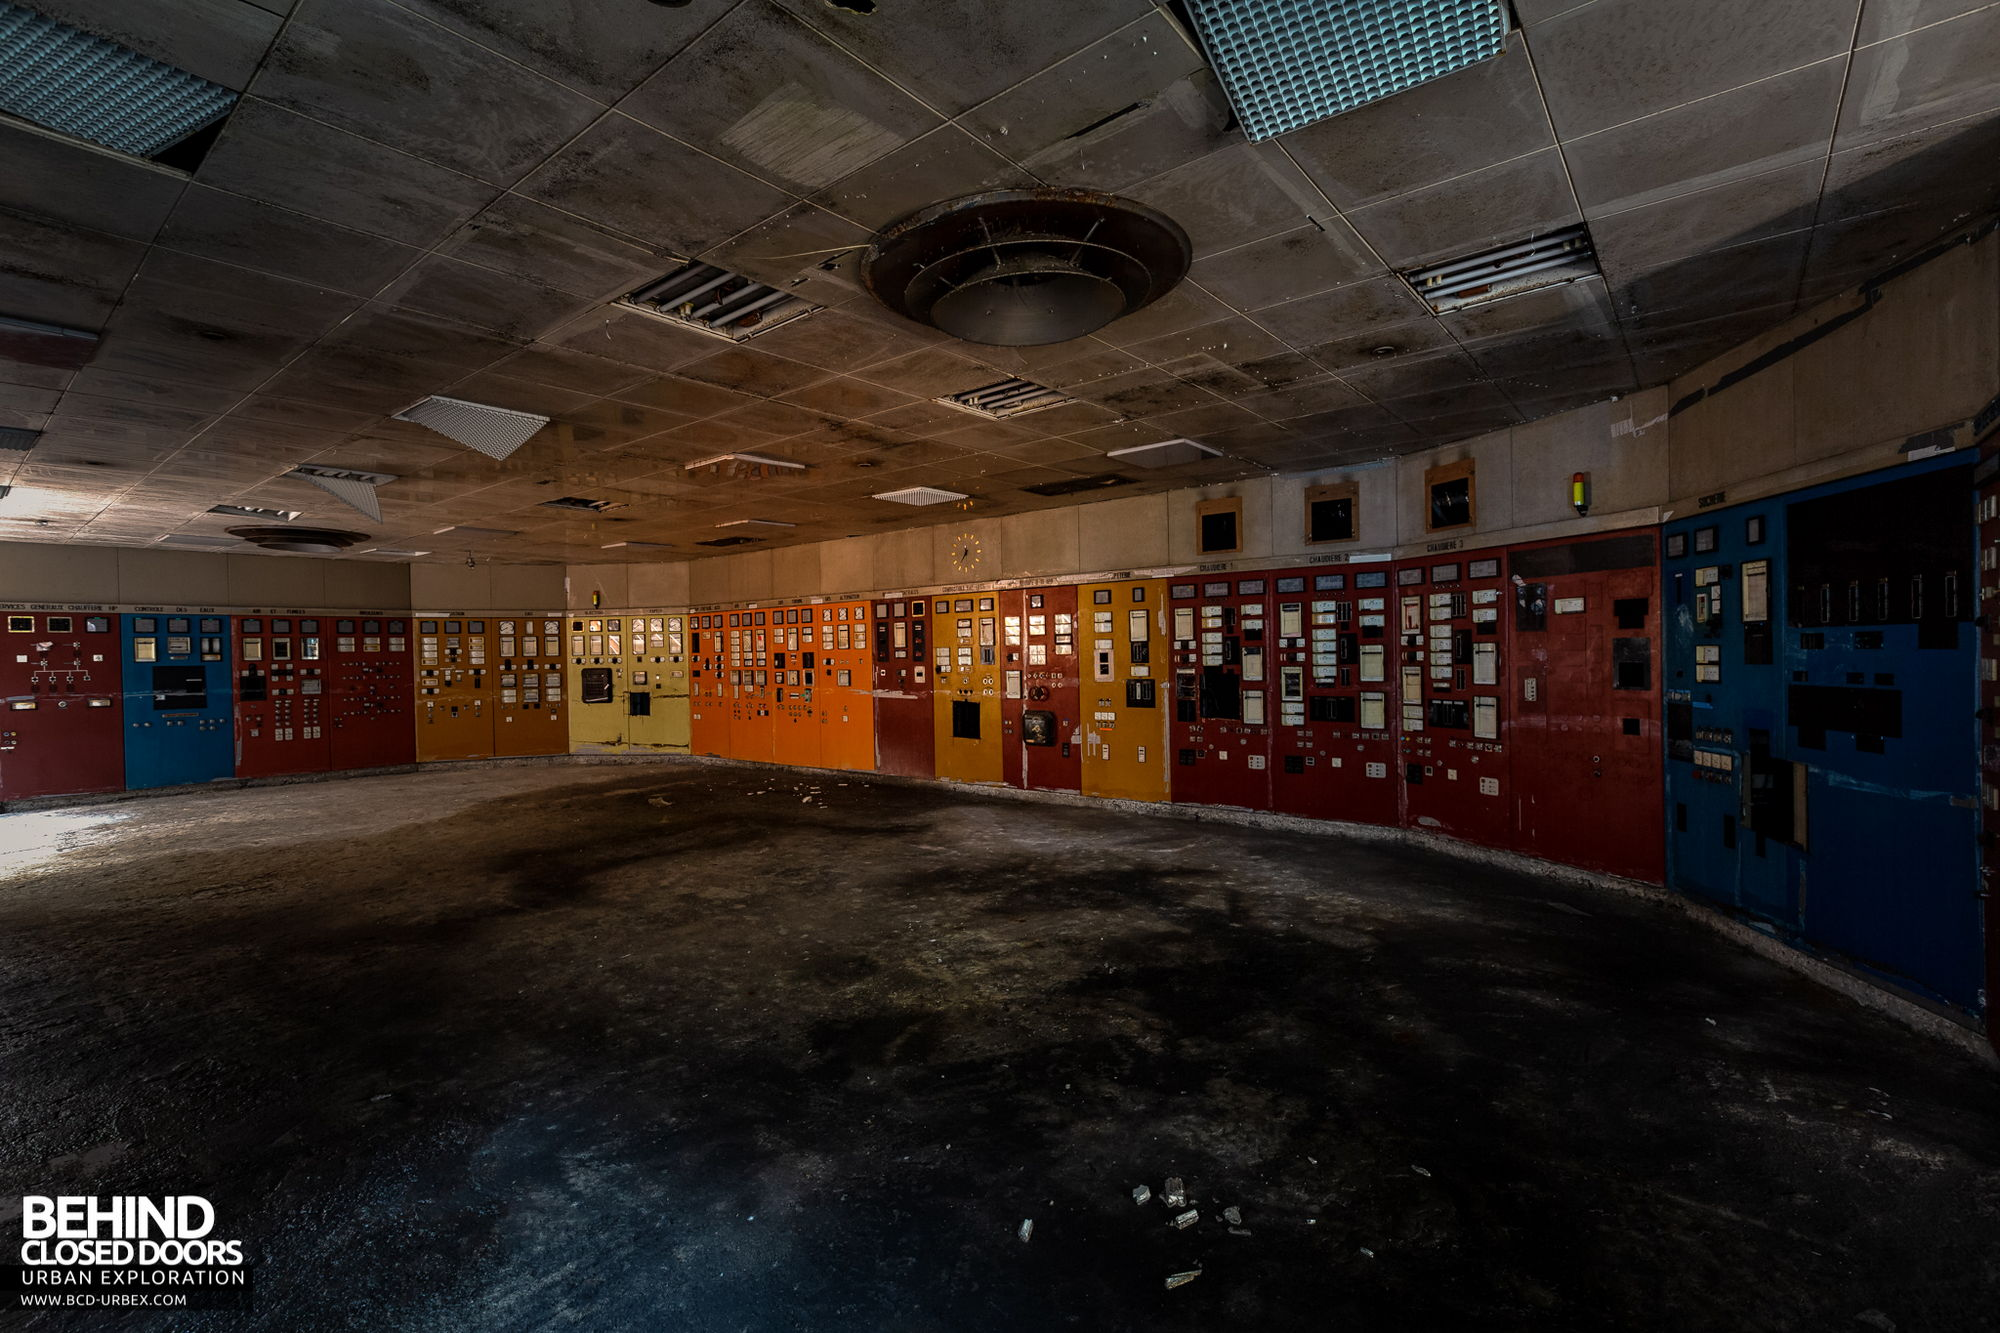 Stora Enso, Corbehem - A stripped out control room